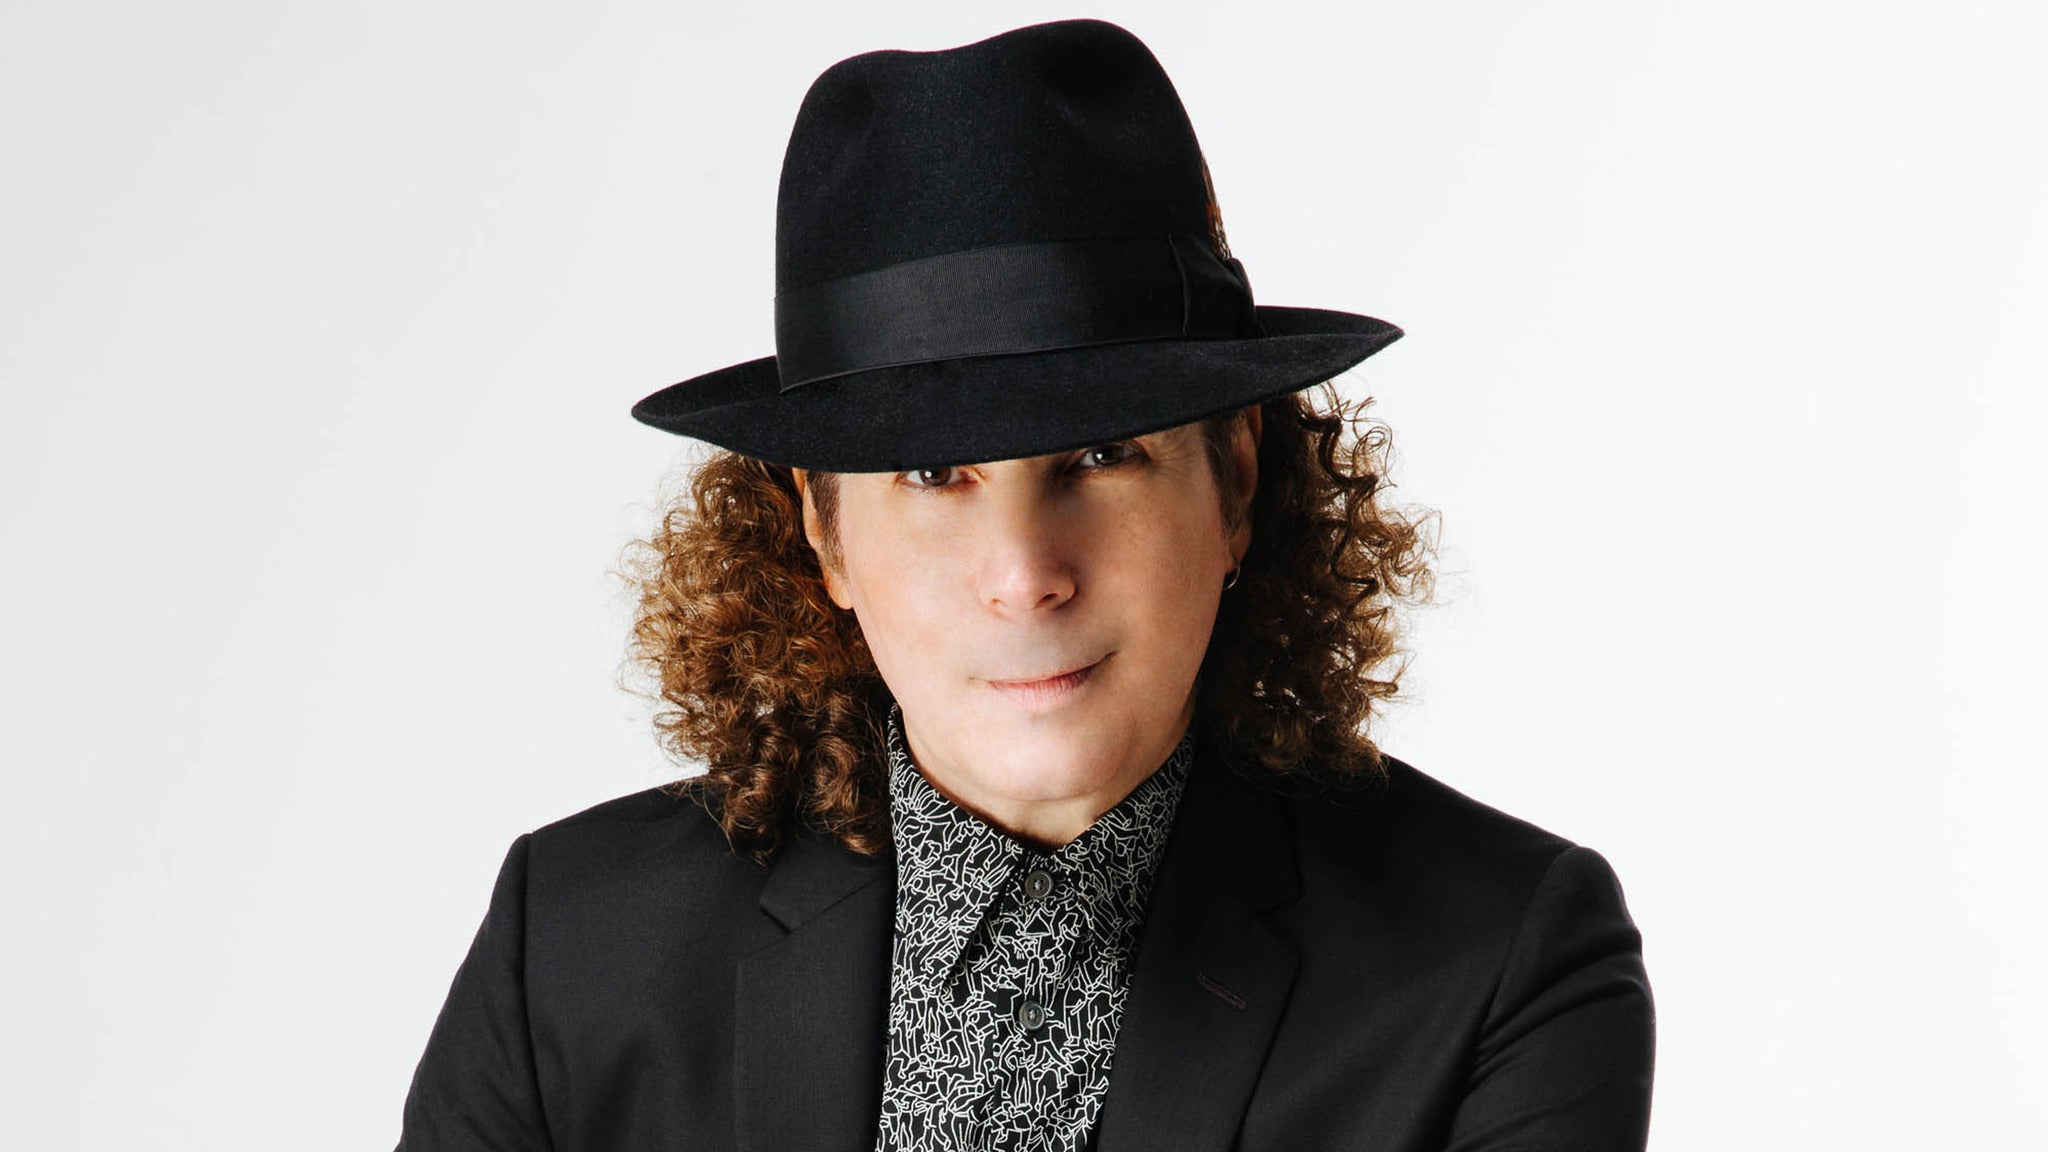 Boney James at Chandler Arts Center